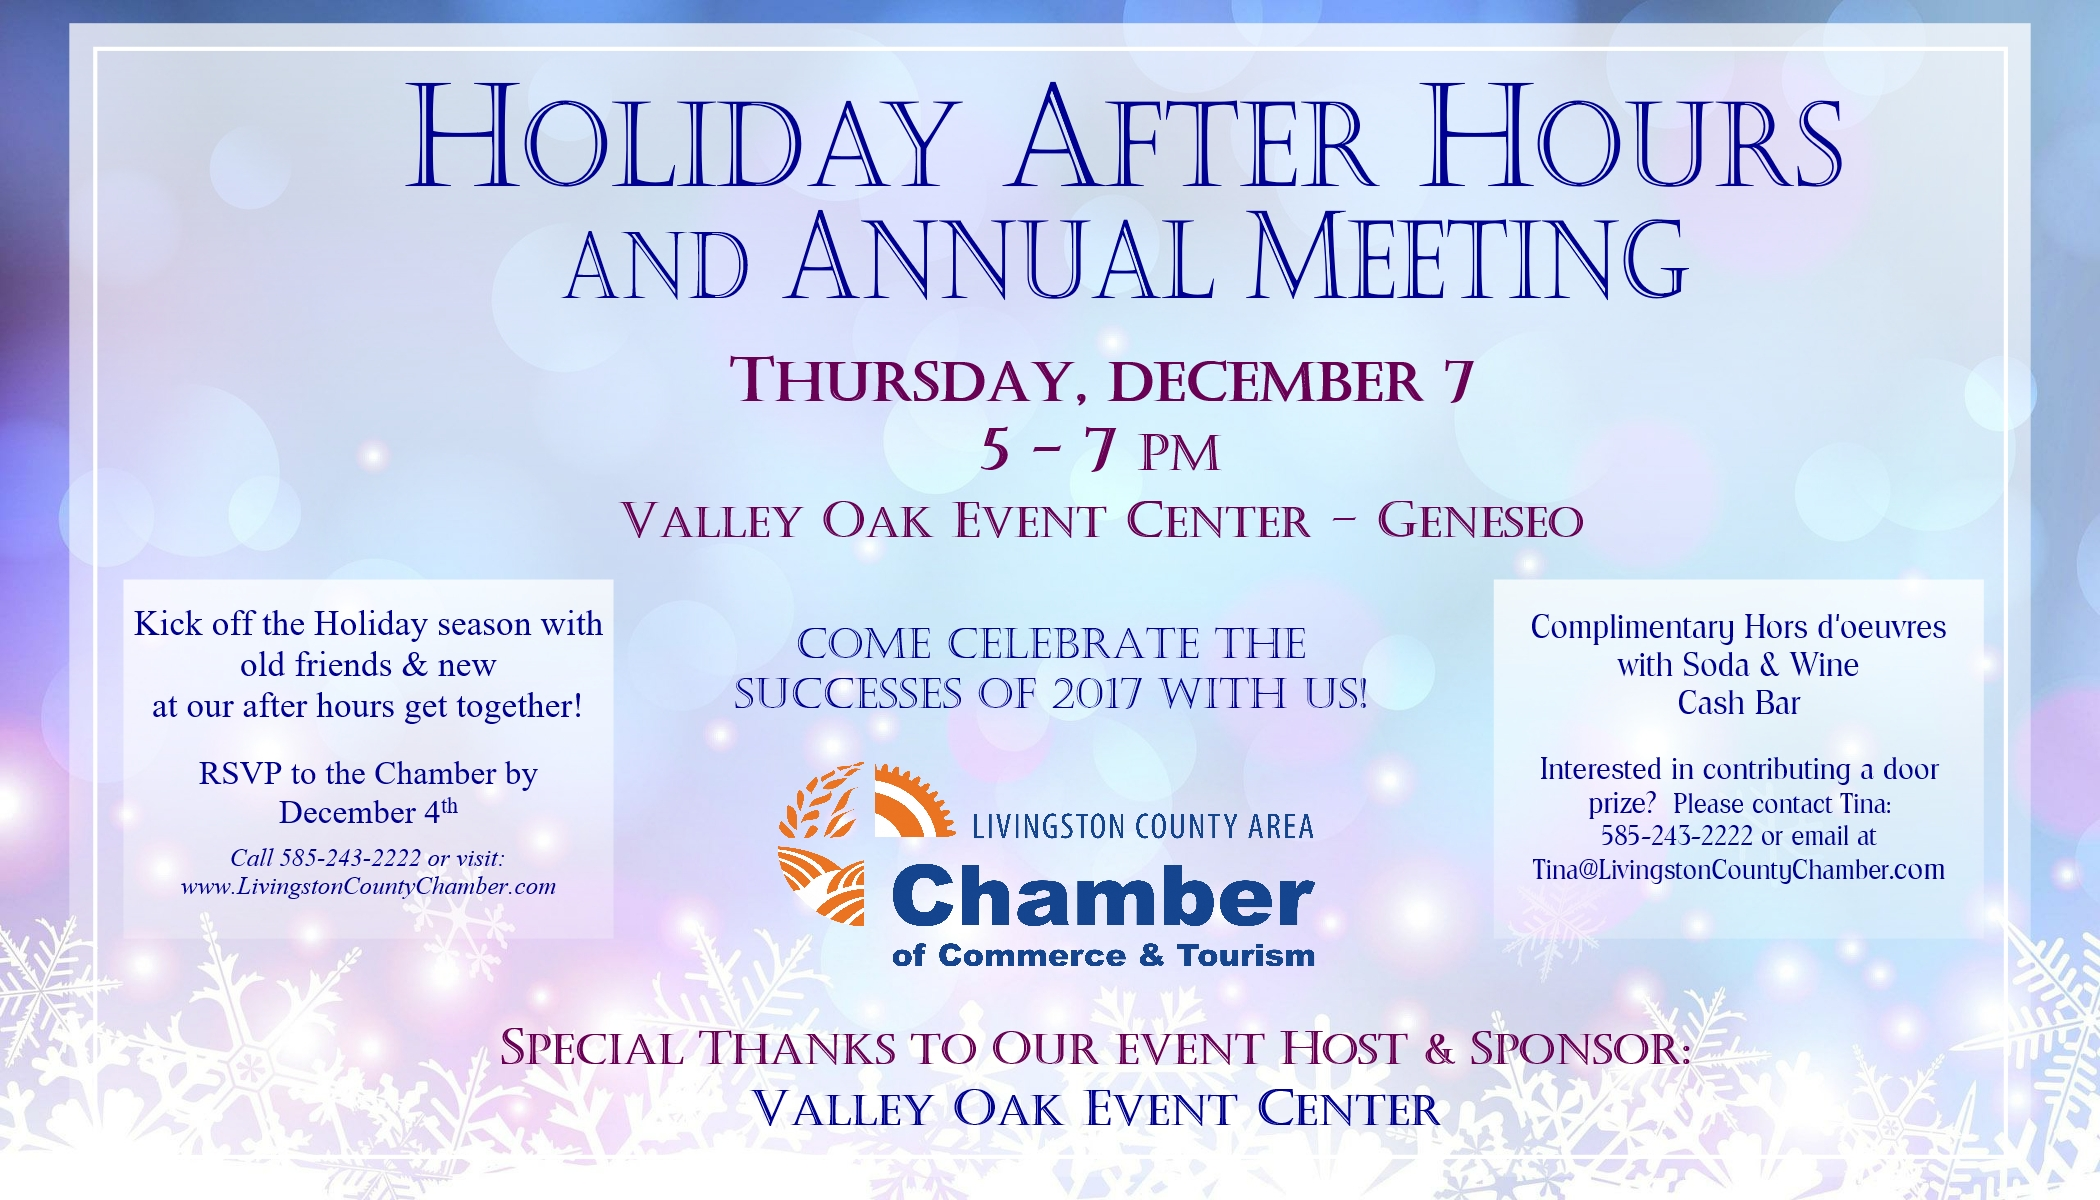 Livingston County Chamber Holiday After Hours 2017